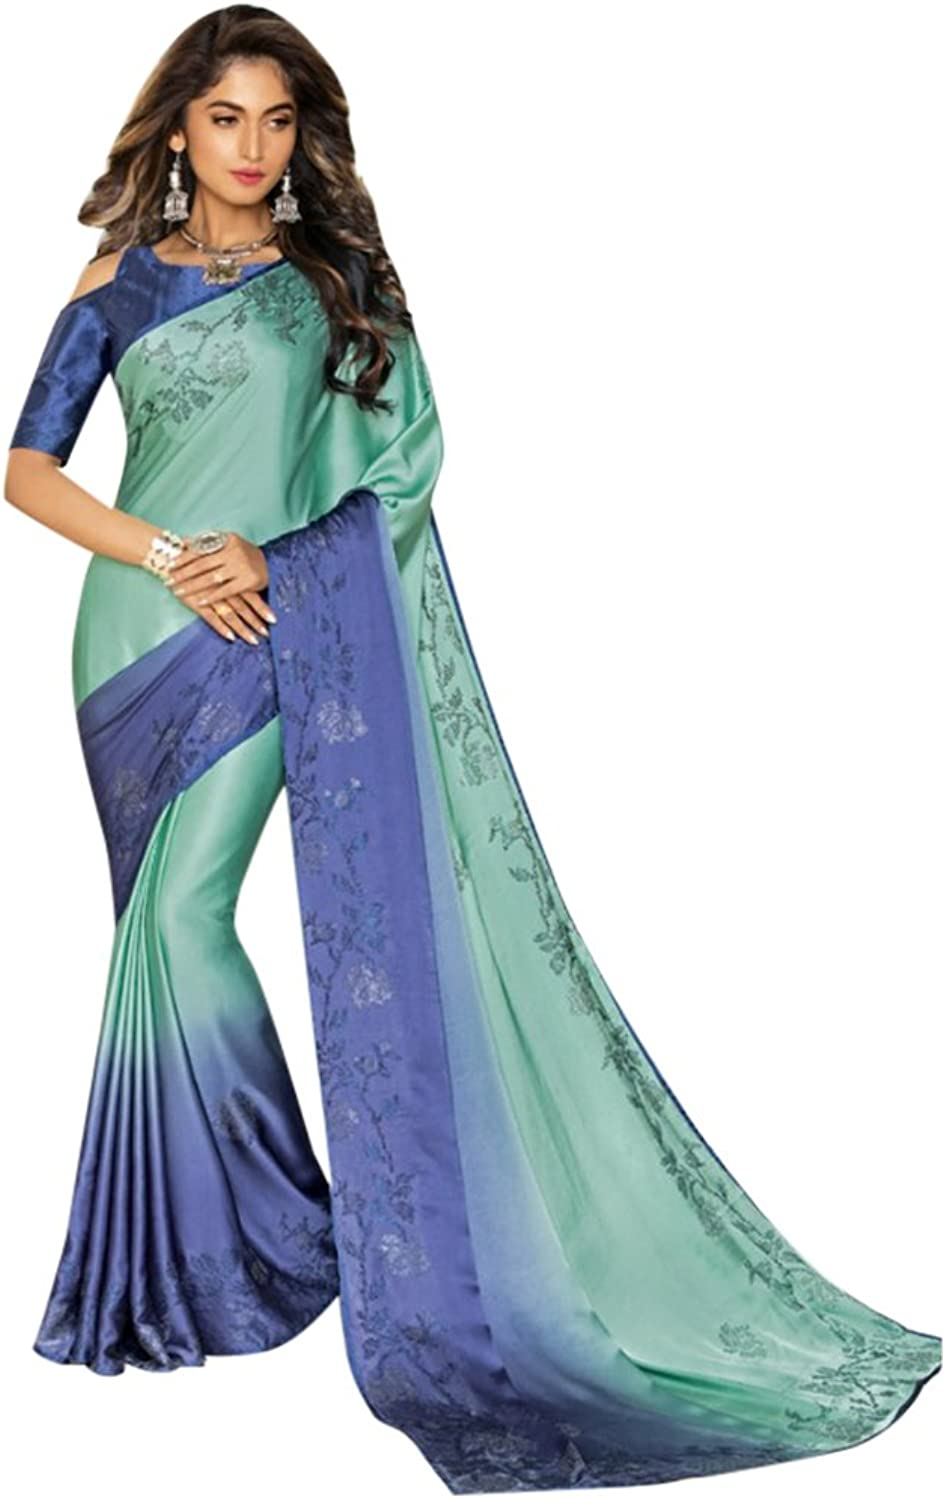 Designer Bollywood Saree Sari for Women Latest Indian Ethnic Collection Blouse Party Wear Festive Ceremony 2553 13